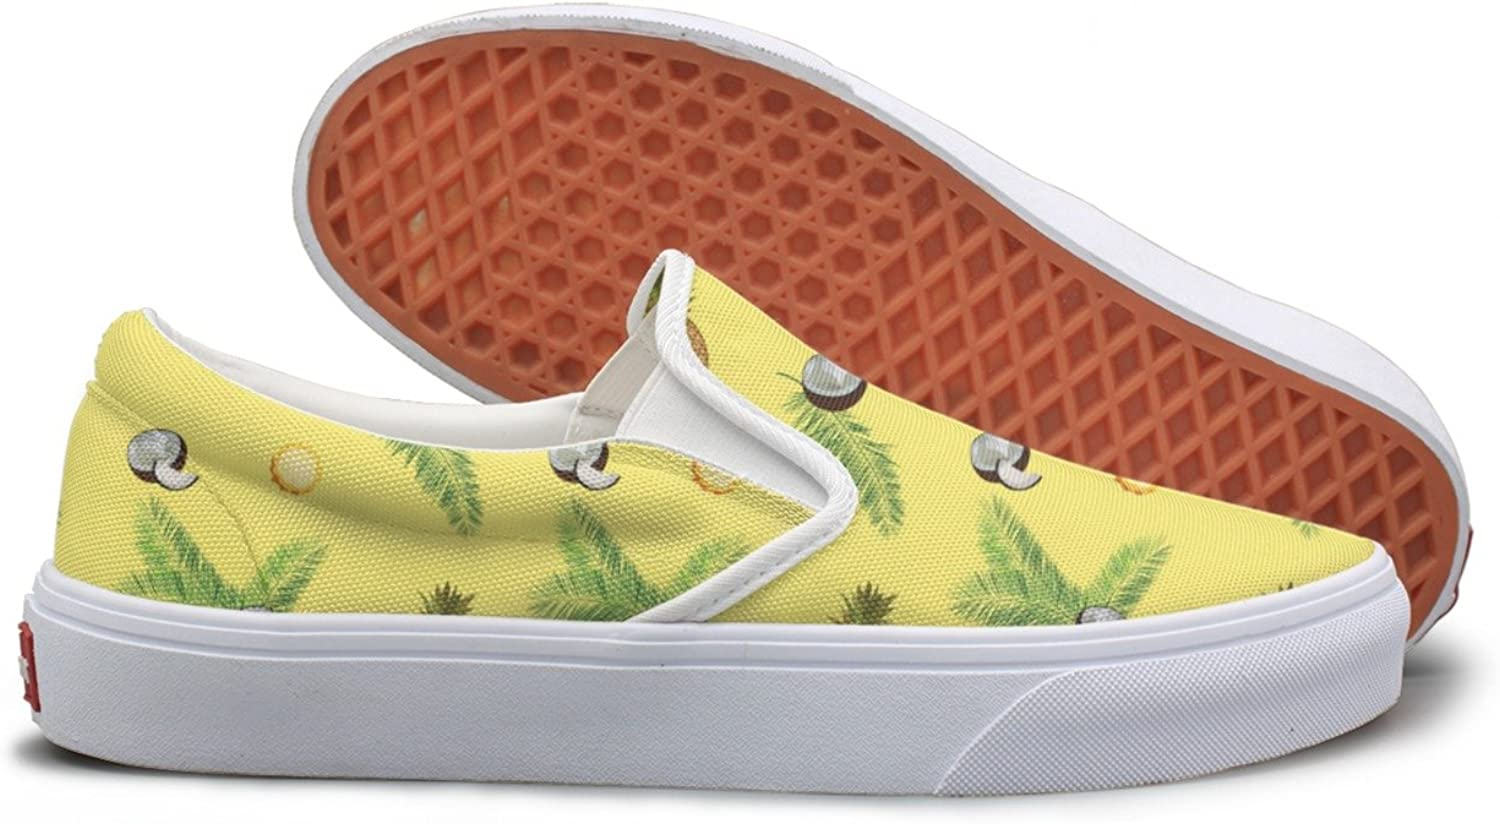 Lalige Yellow Pineapple Coconut Palm Womens Stylish Canvas Slip-ONS Sneakers shoes